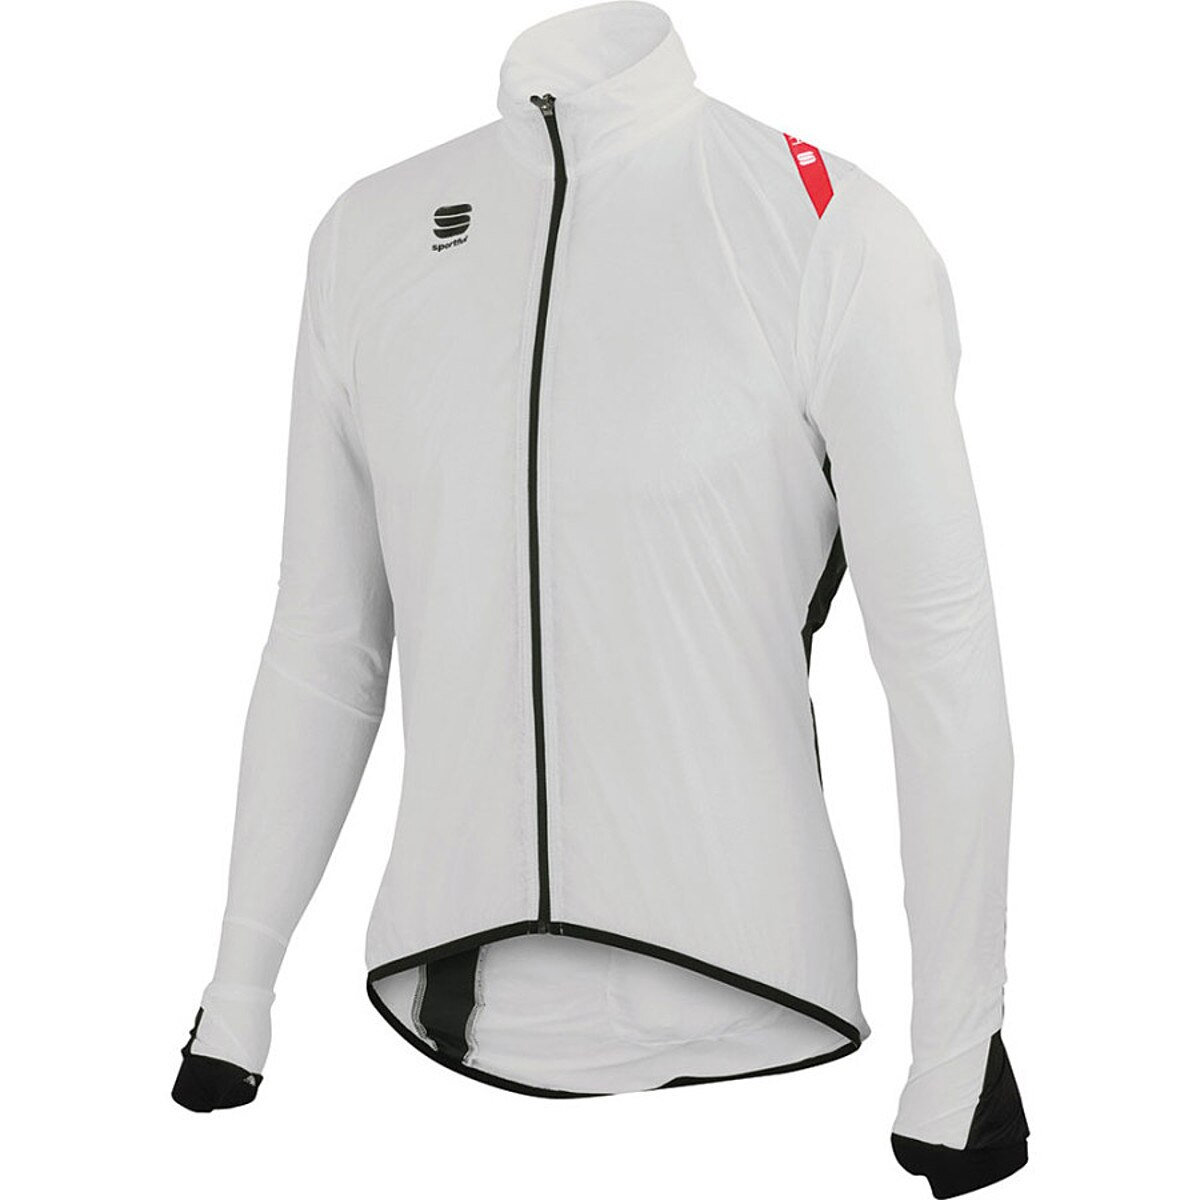 Sportful Hot Pack 5 Jacket Men's